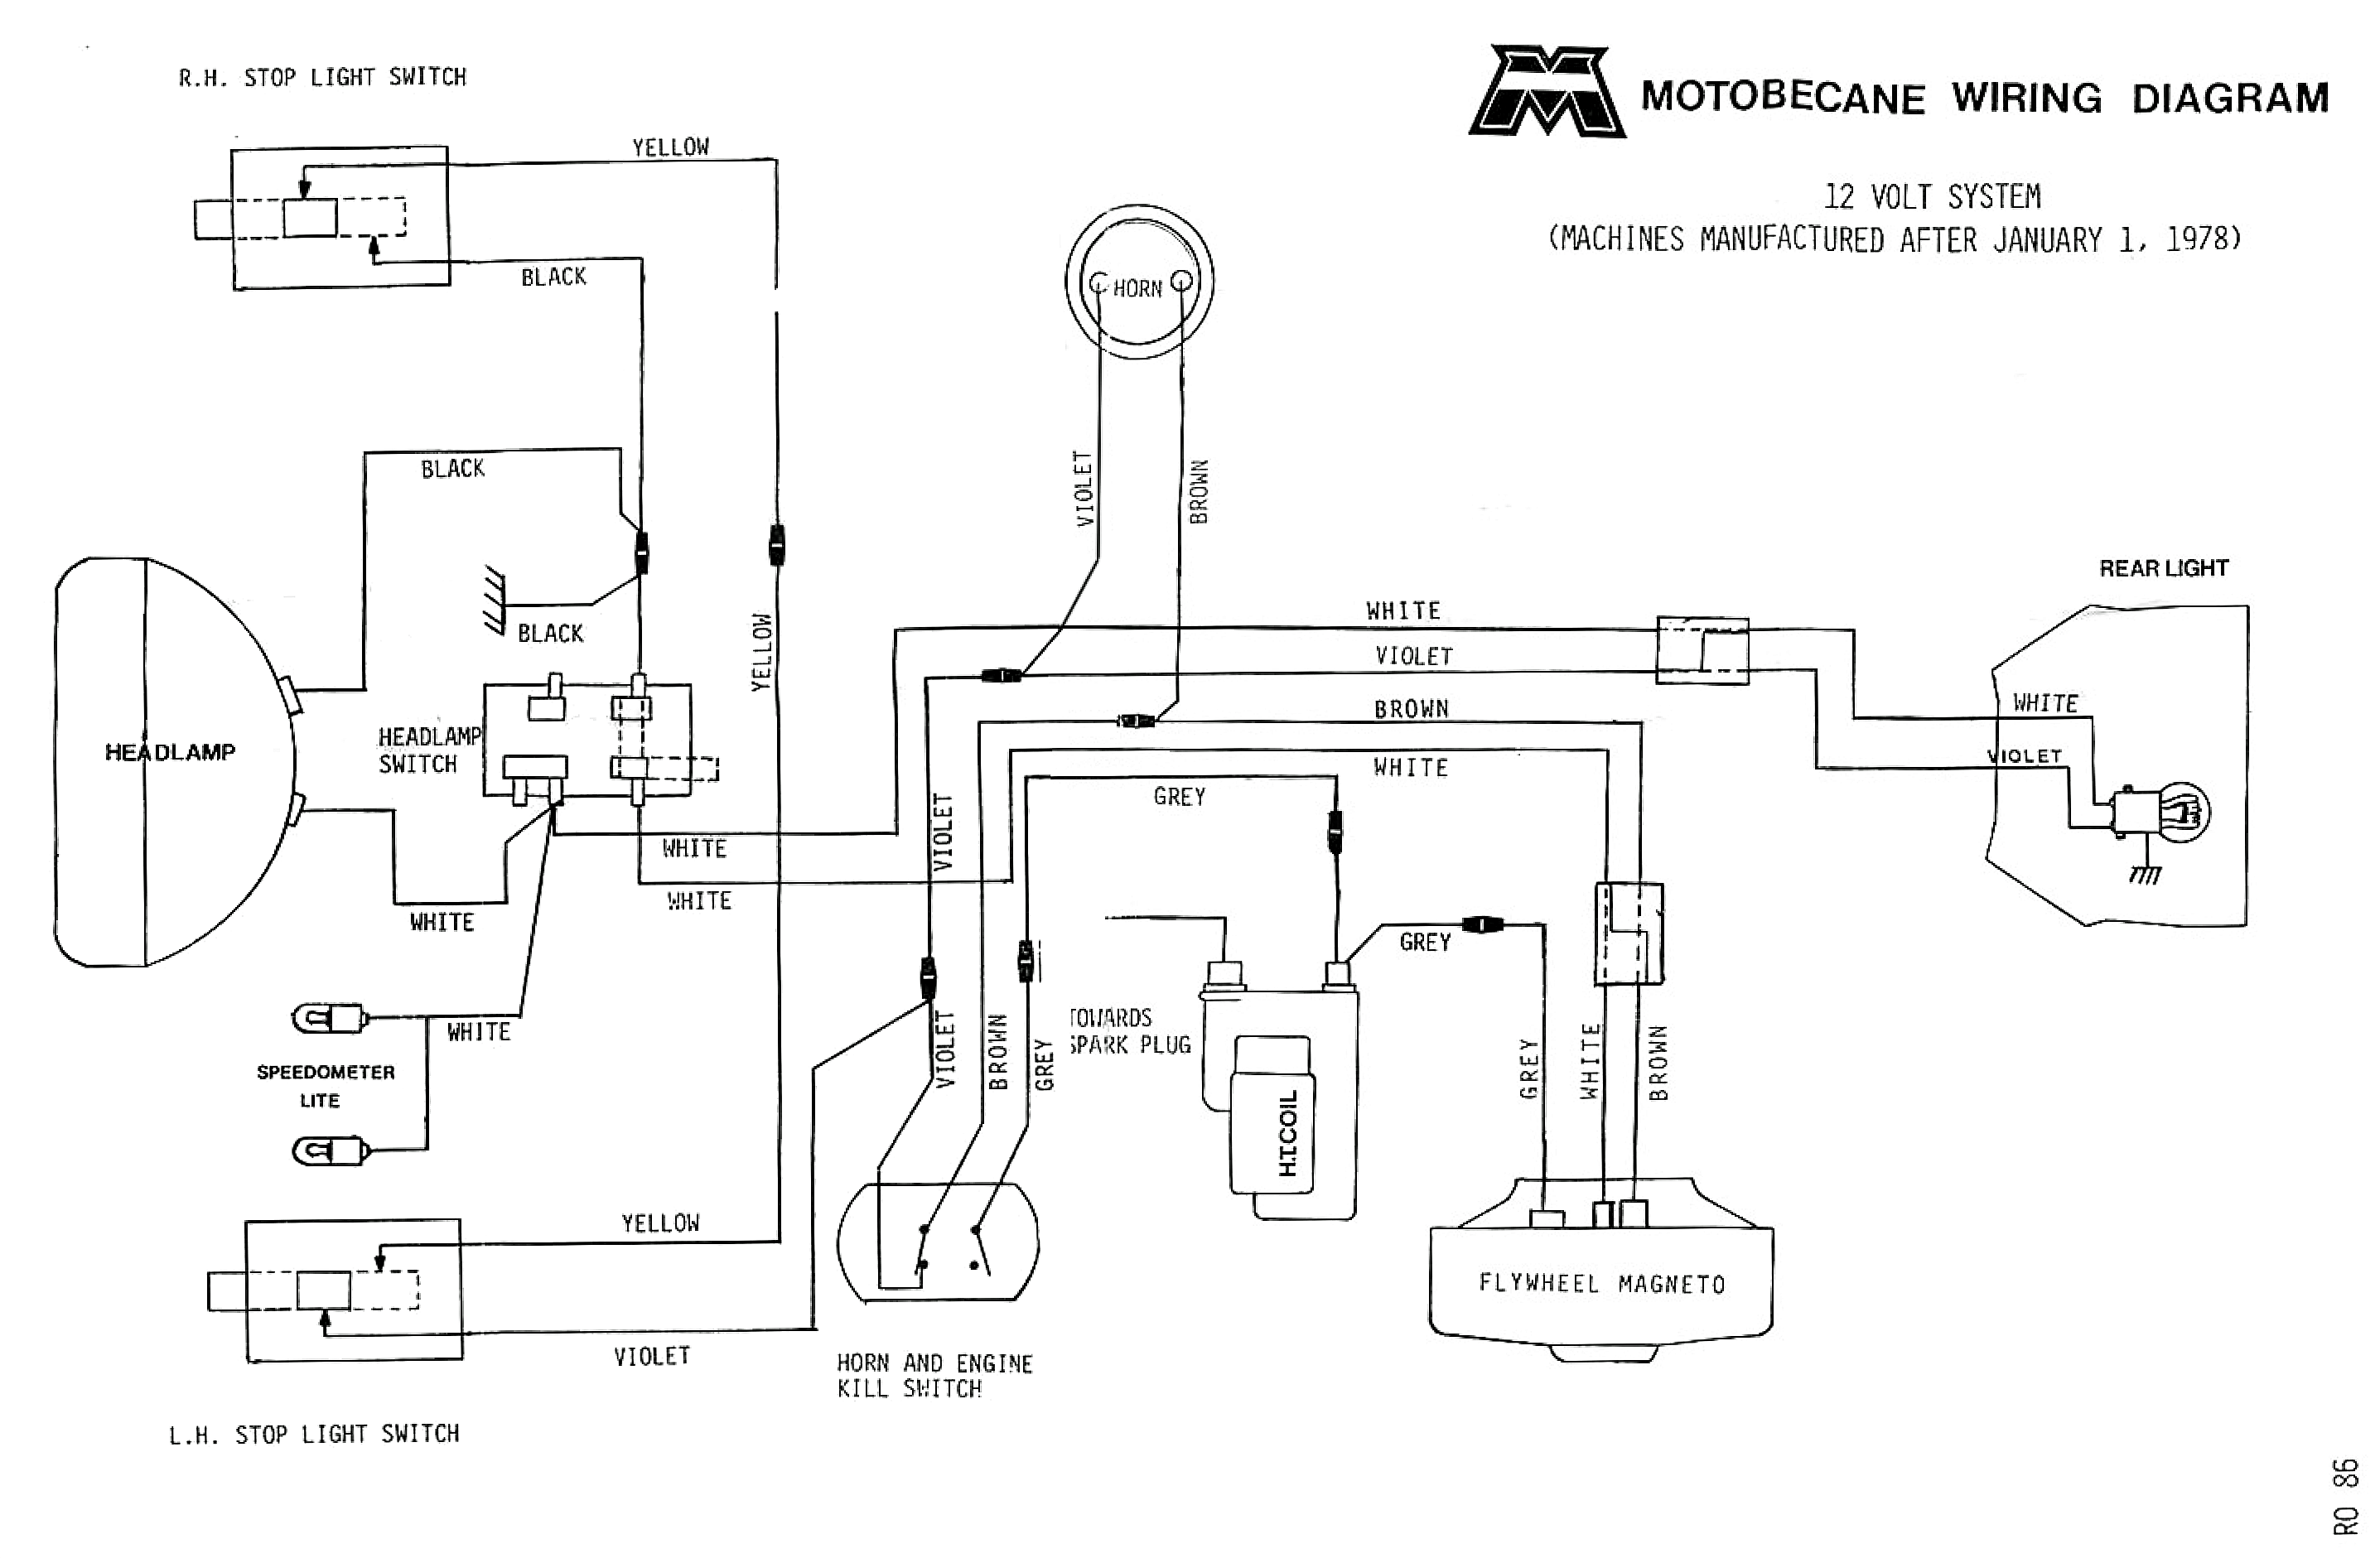 motobecane wiring diagrams moped wiki easy wiring diagrams motobecane12v wiring diagram png